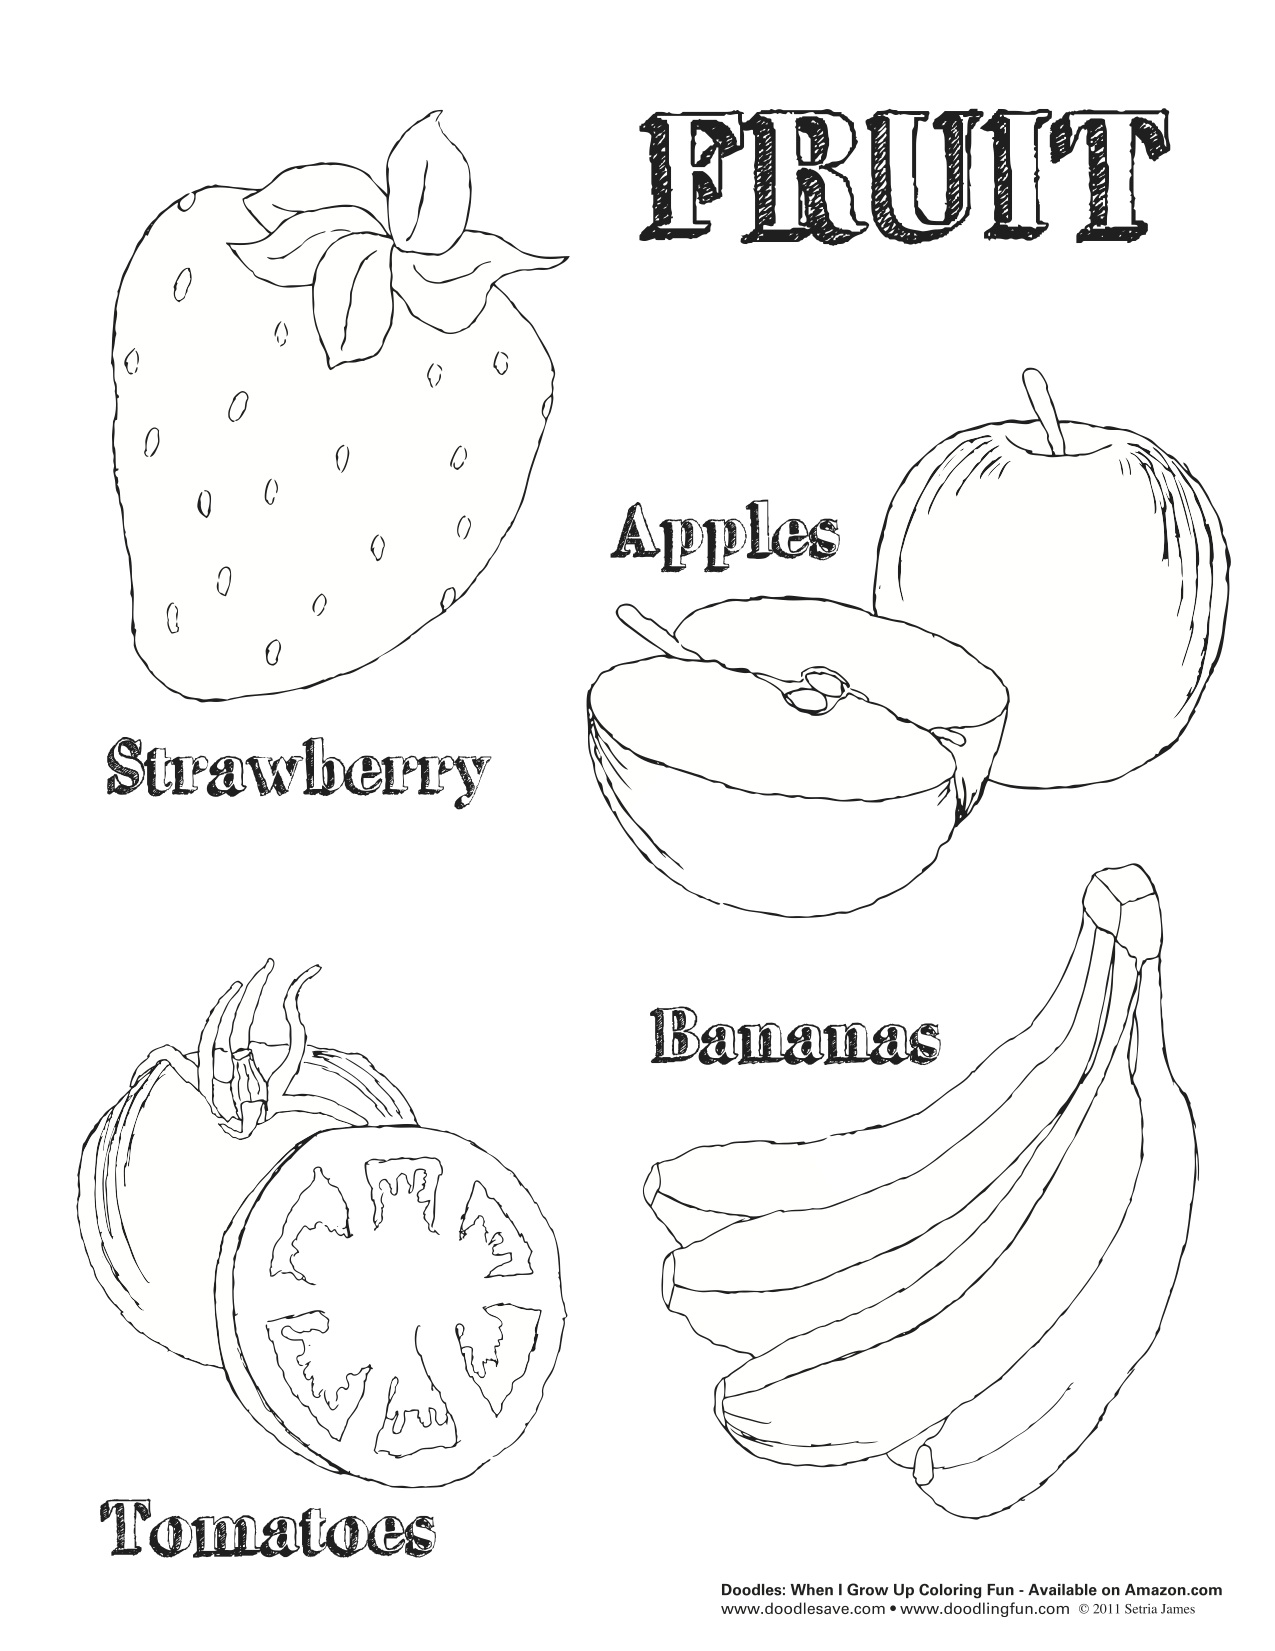 monthly coloring pages - national nutrition month doodles ave